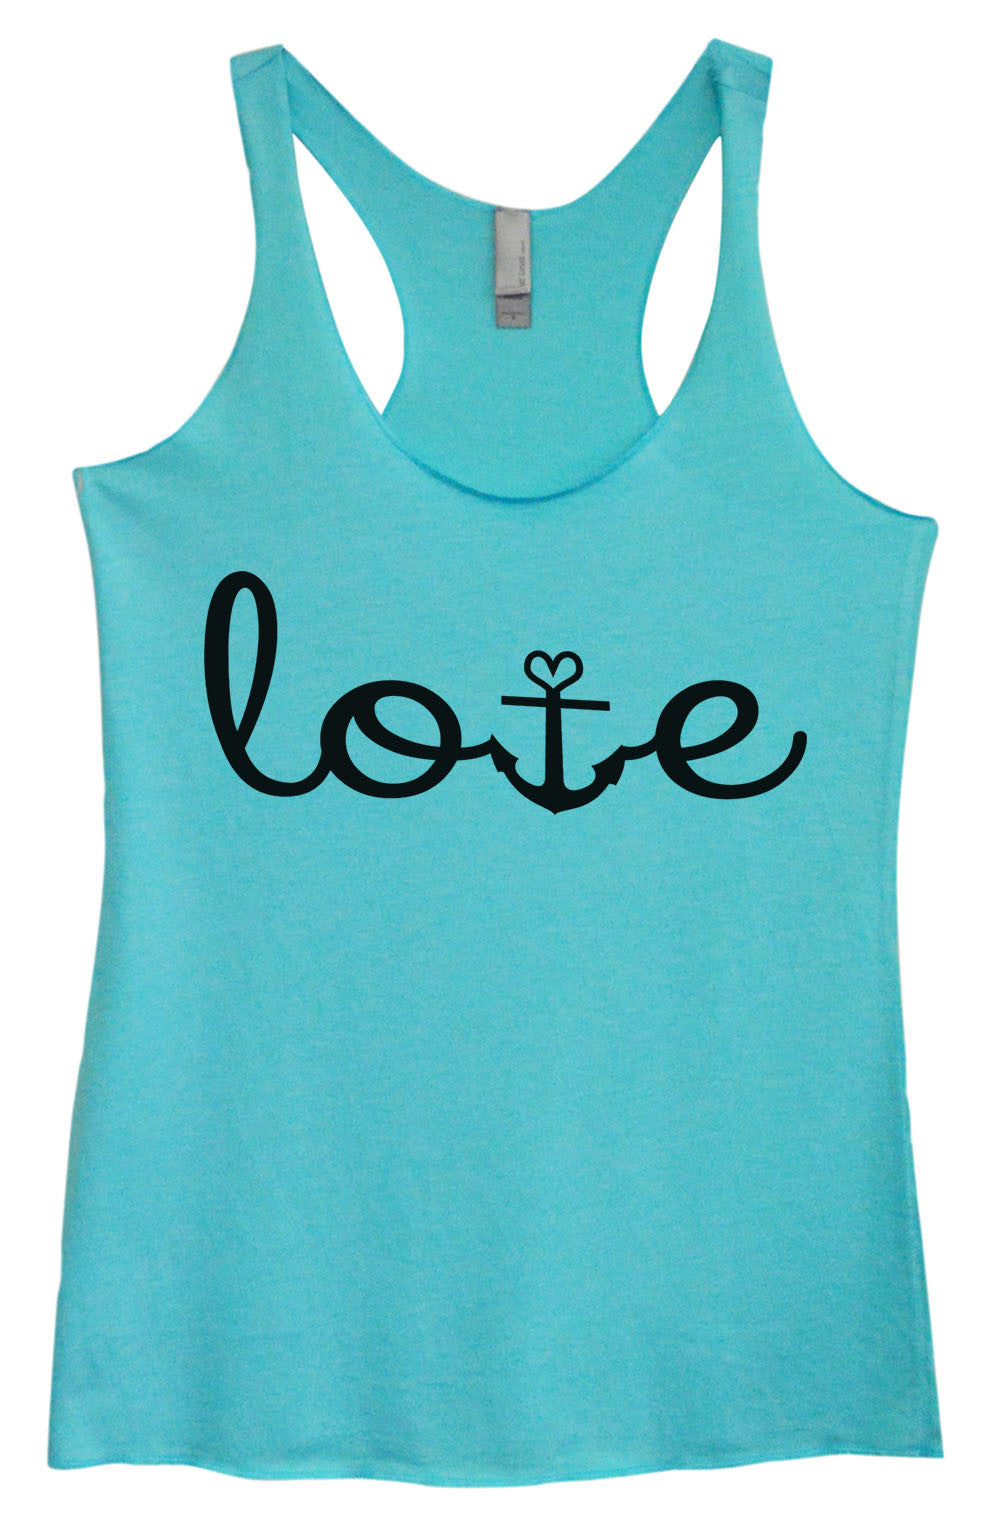 Womens Fashion Triblend Tank Top - Love - Tri-935 - Funny Shirts Tank Tops Burnouts and Triblends  - 3